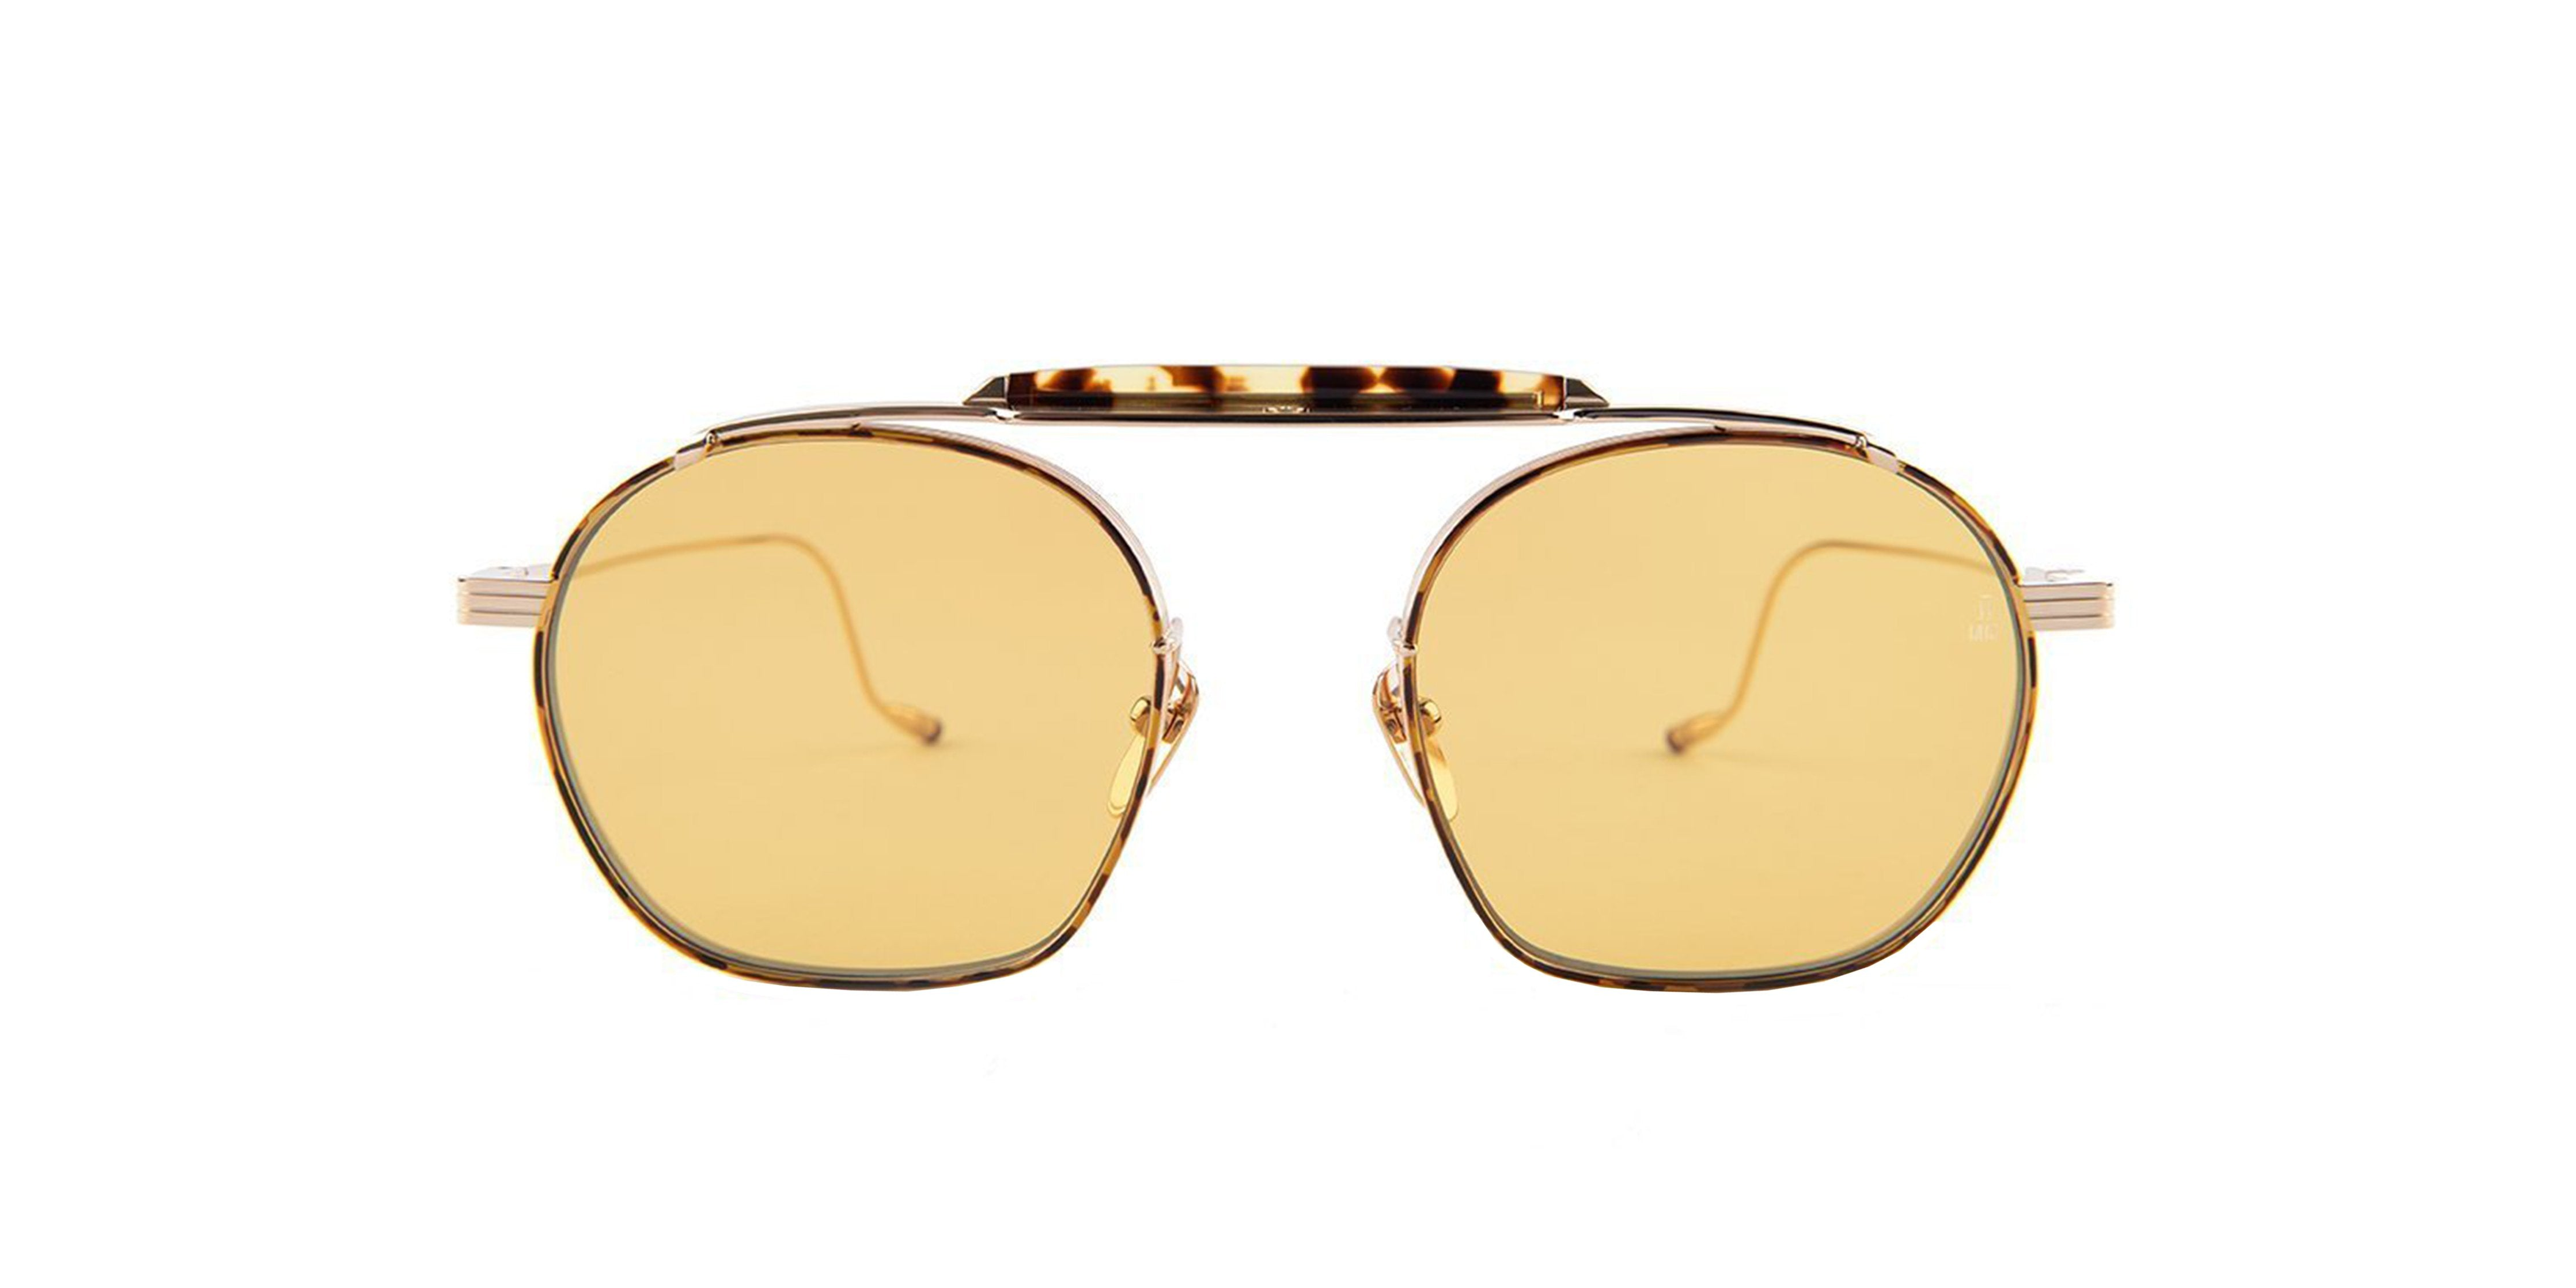 Jacques Marie Mage - Victorio Brown/Yellow Solid Unisex Sunglasses - 41mm-Sunglasses-Designer Eyes